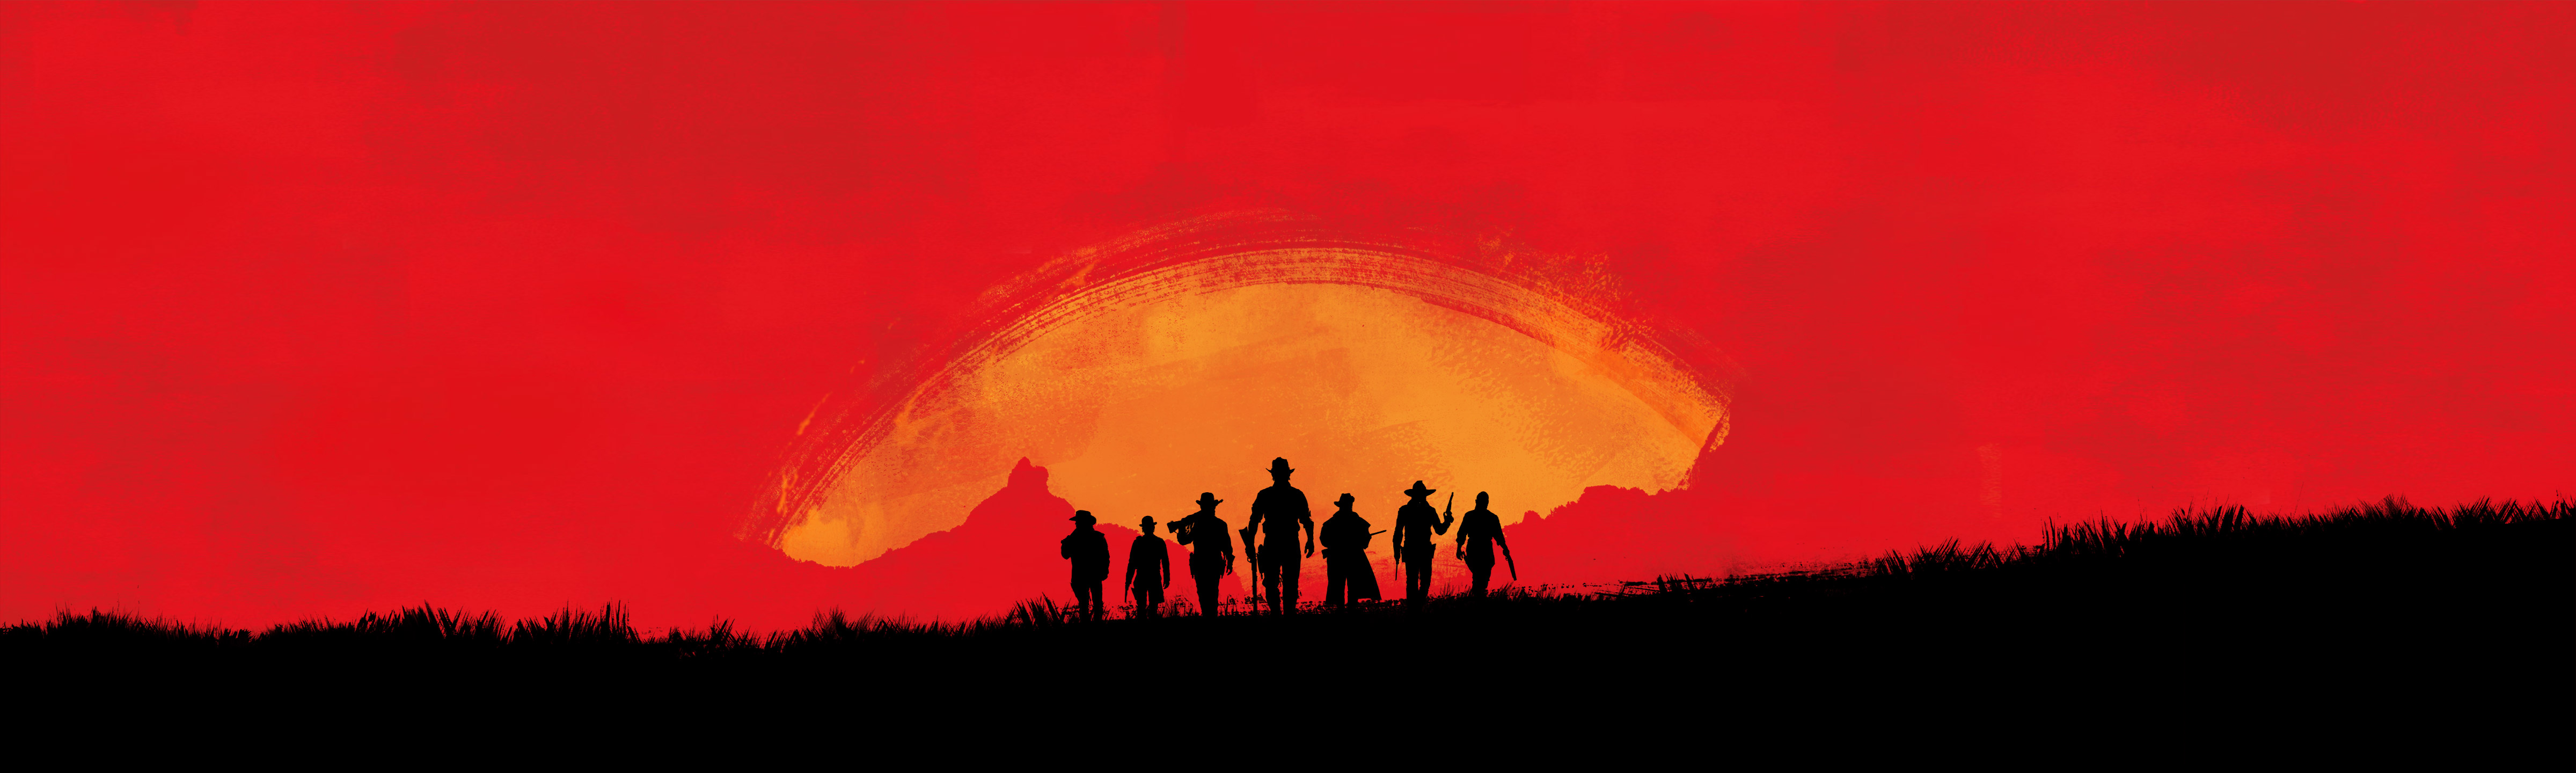 Rockstar Red Dead 3 Teaser Art